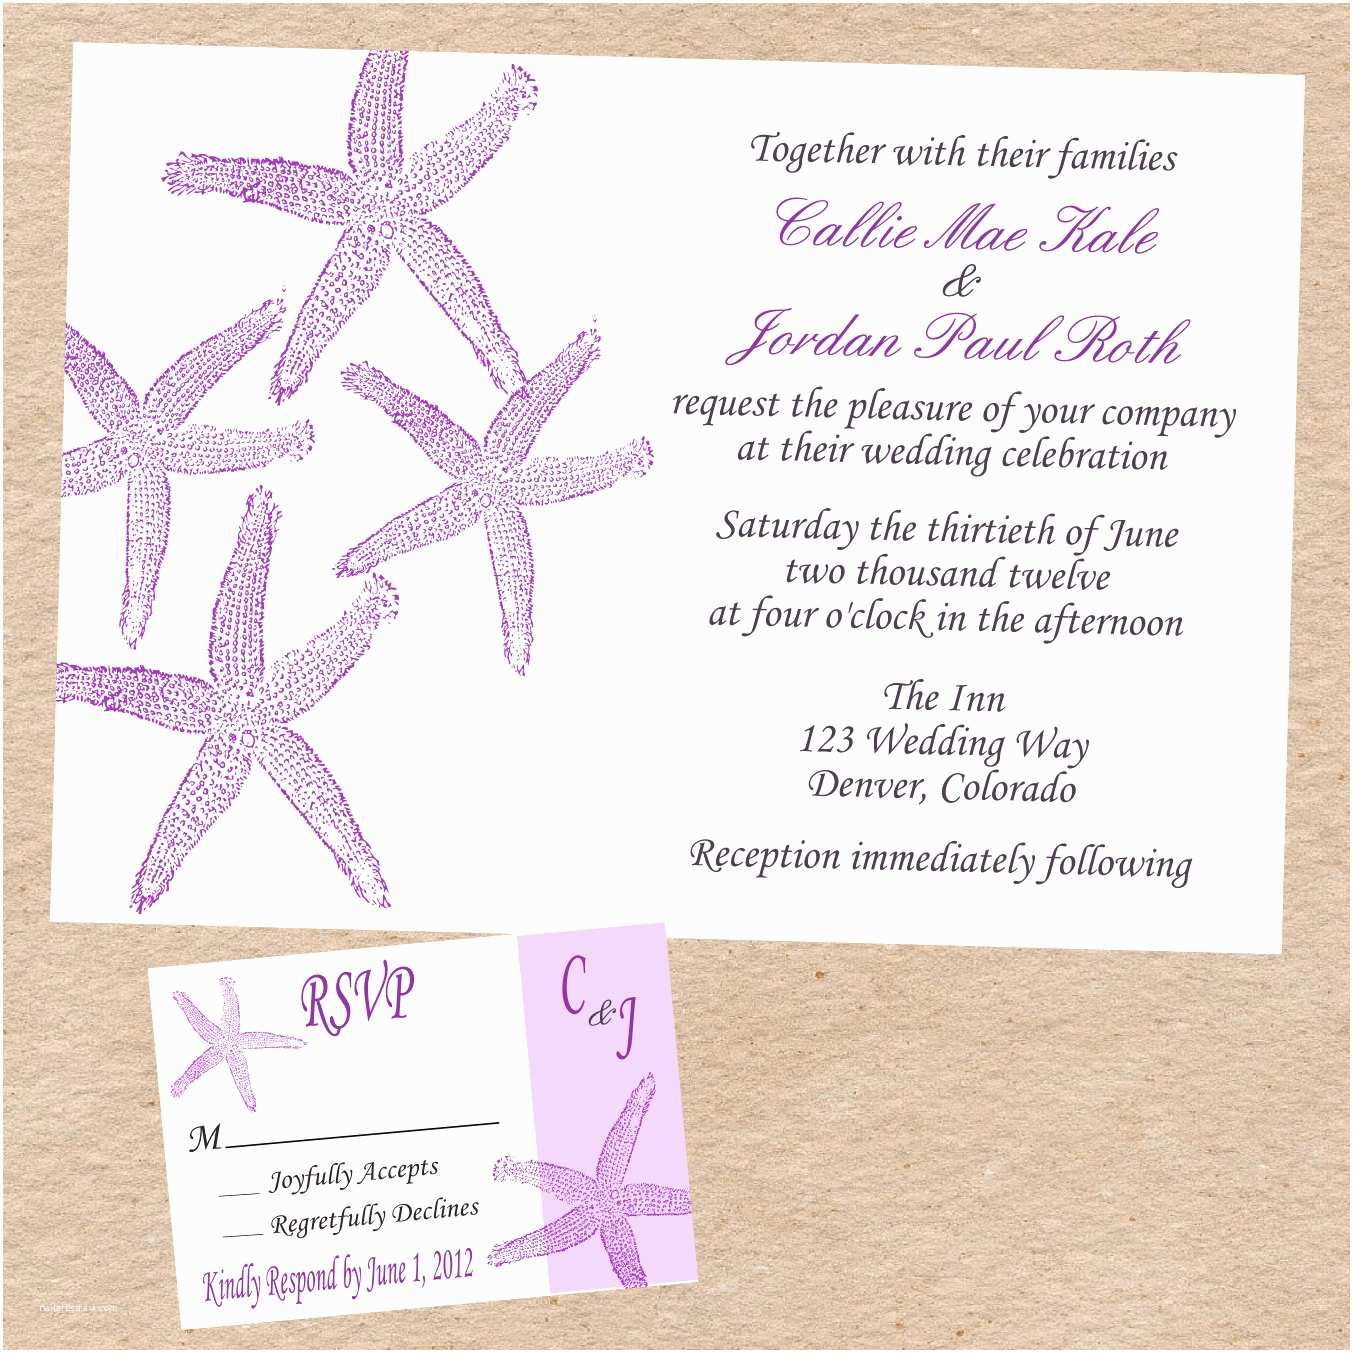 Wedding Invitation Wording Options Destination Wedding Invitation Wording